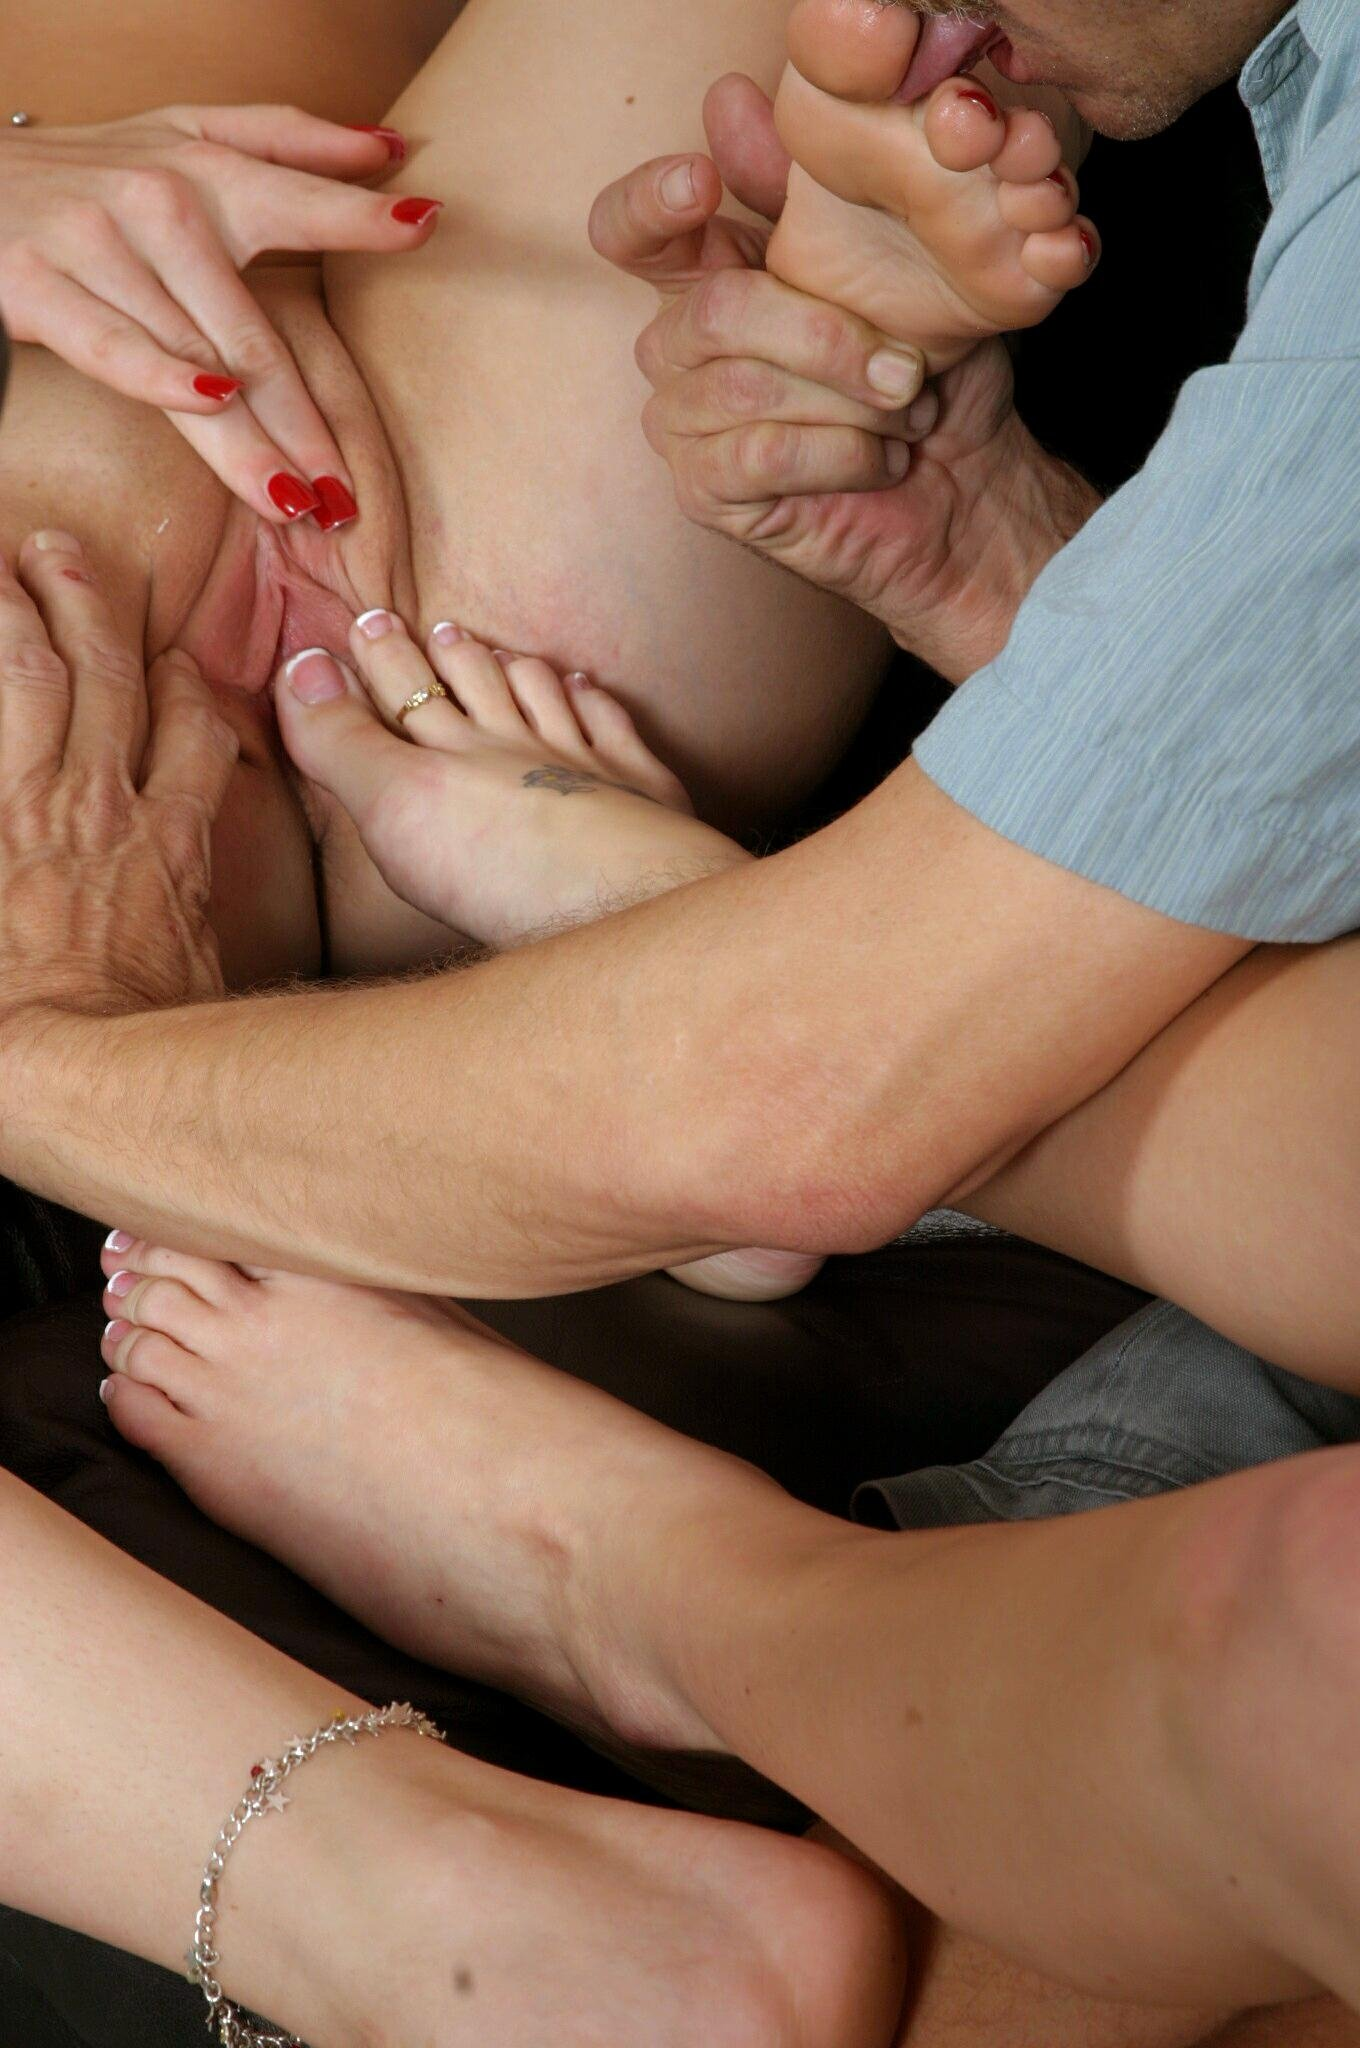 spanking and oral sex